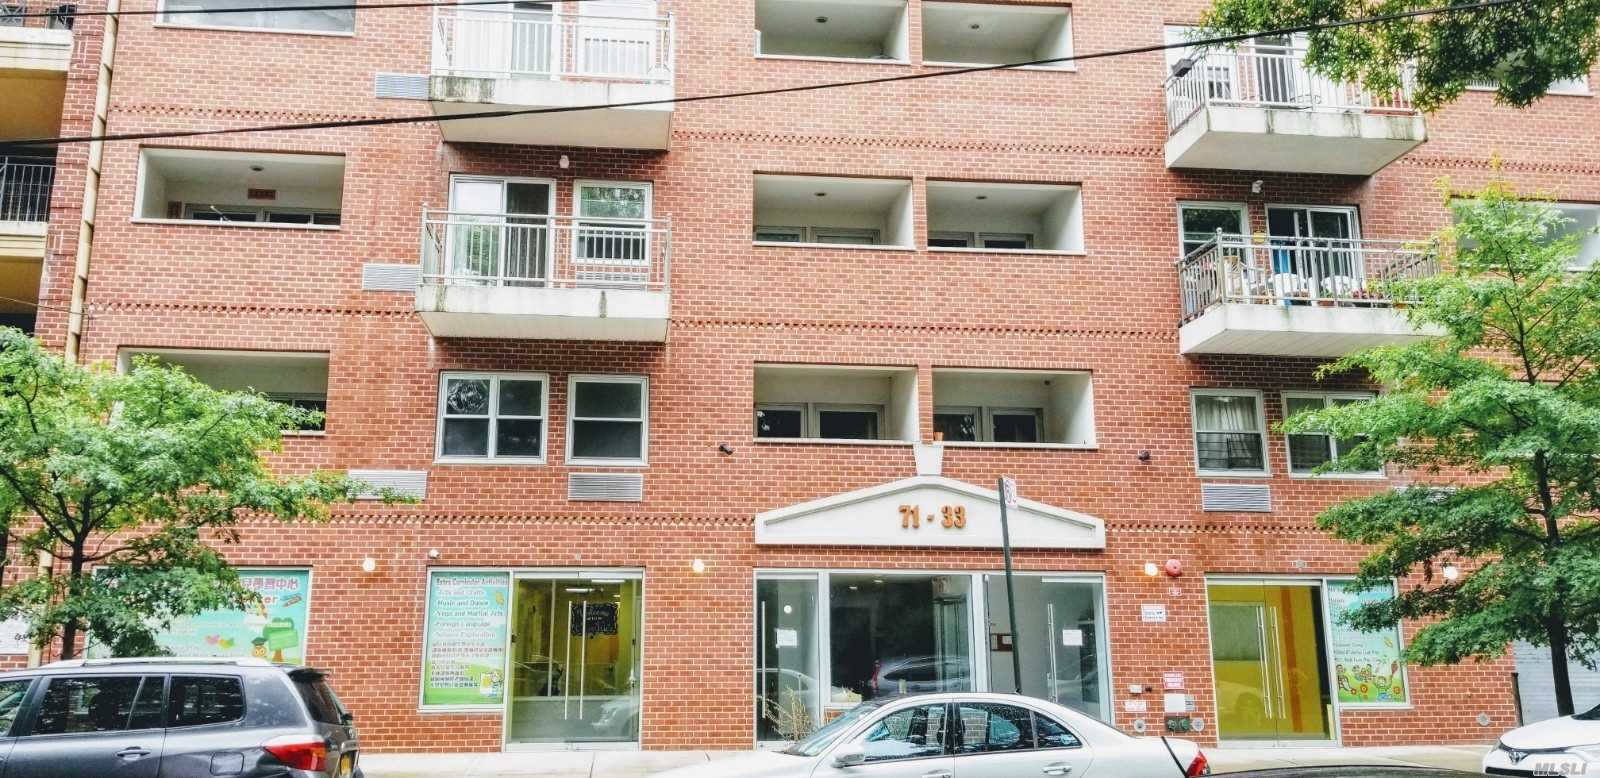 10 Years Young Condo In Prime Queens Location, Very Close To St. John University And Queens Collage, Direct Bus To Flushing & Express Bus To Manhattan. 2 Bedrooms, 2 Full Bathrooms And Indoor Parking Space Available @Additional Fees.Needs Credit Report, Proof Of Income, 2 Years W2, Bank Statement.